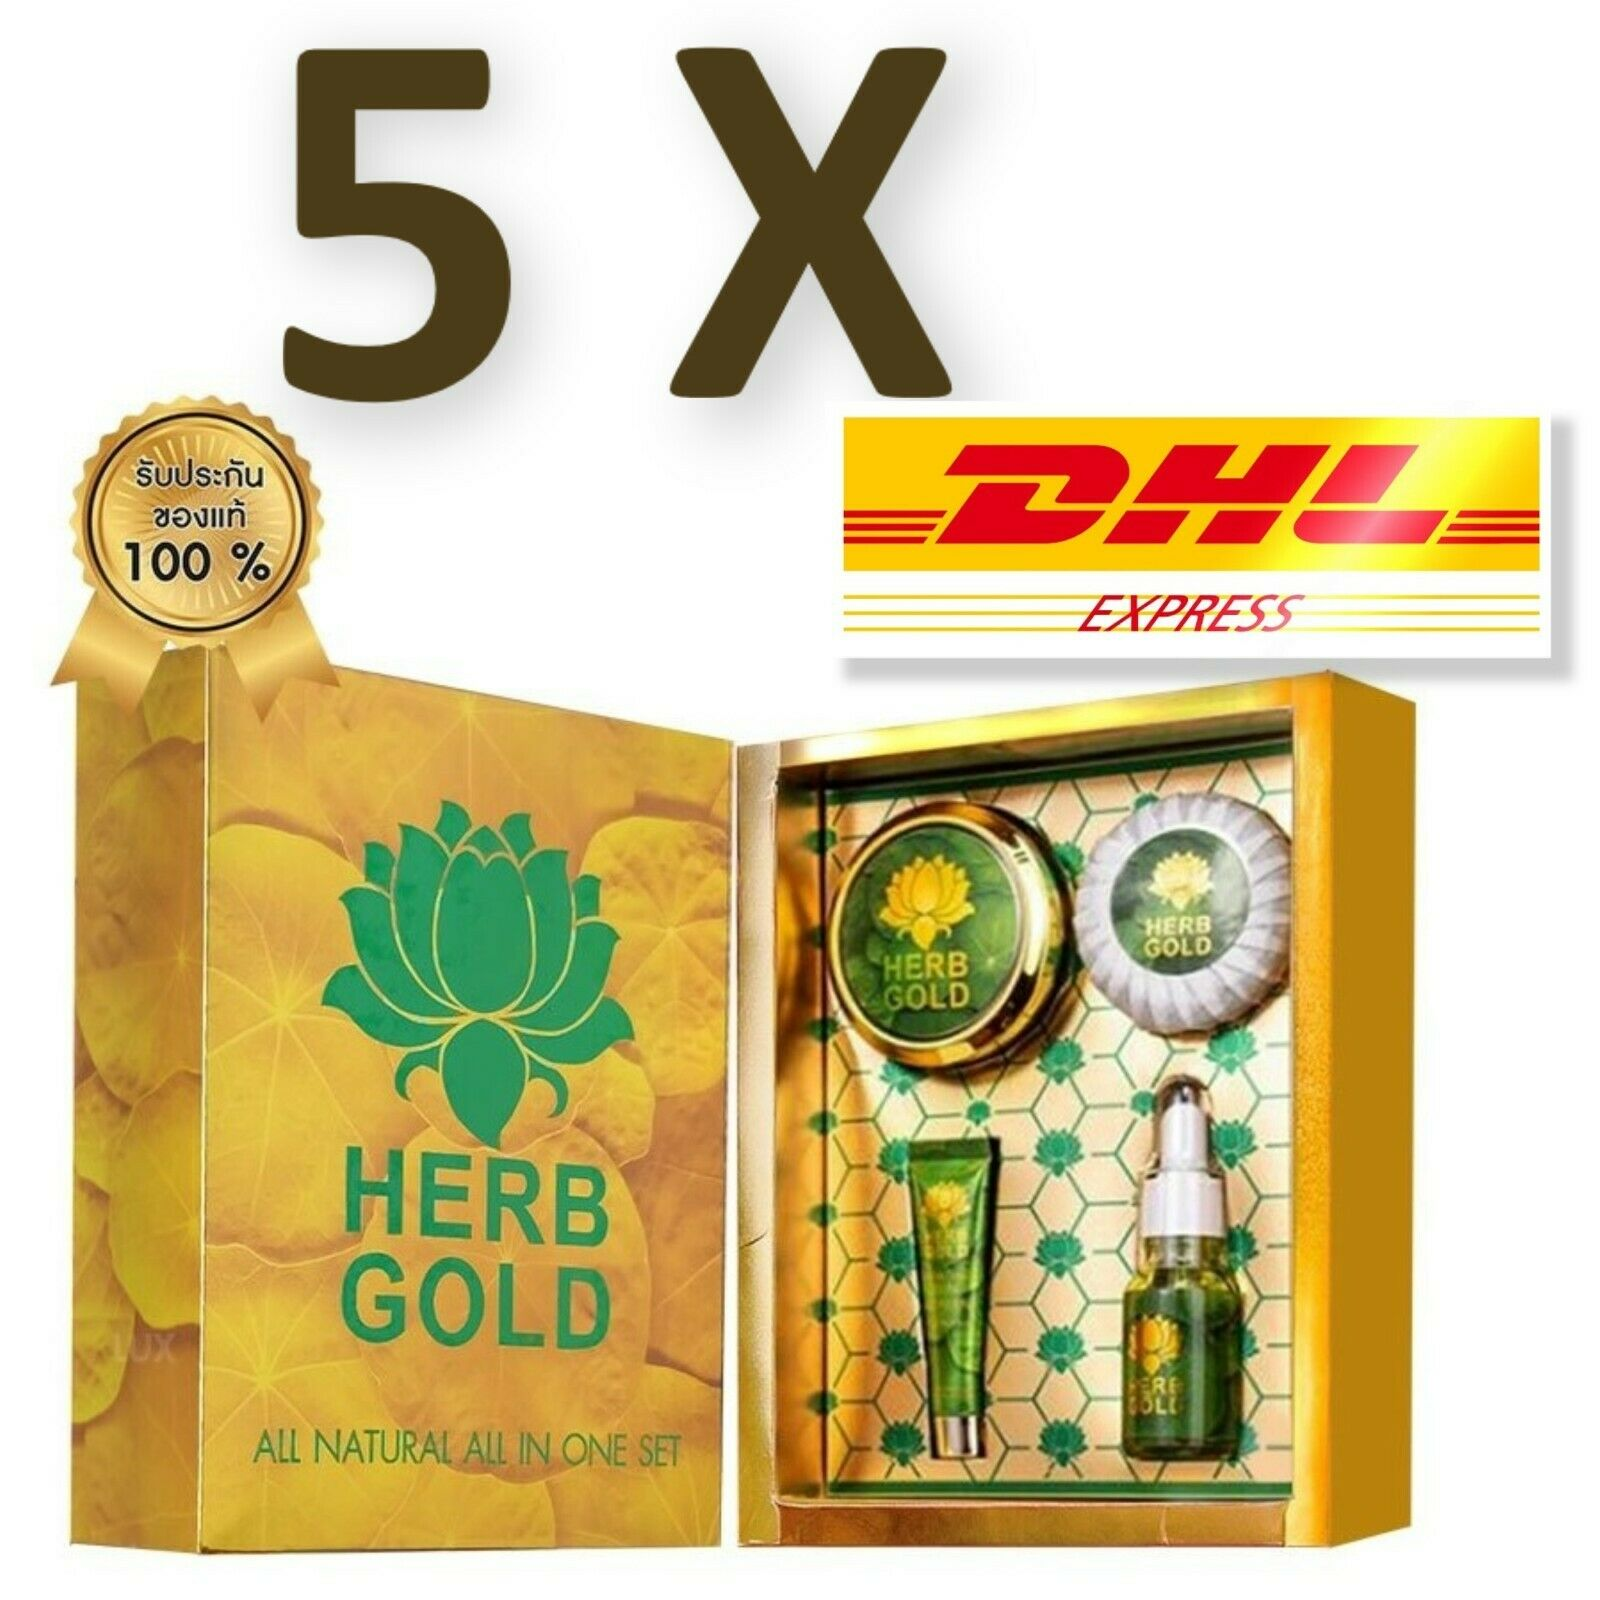 5 X Lotus Herb Gold Luck Inside Skin Smooth Herbs Extract Acne Freckles Clear